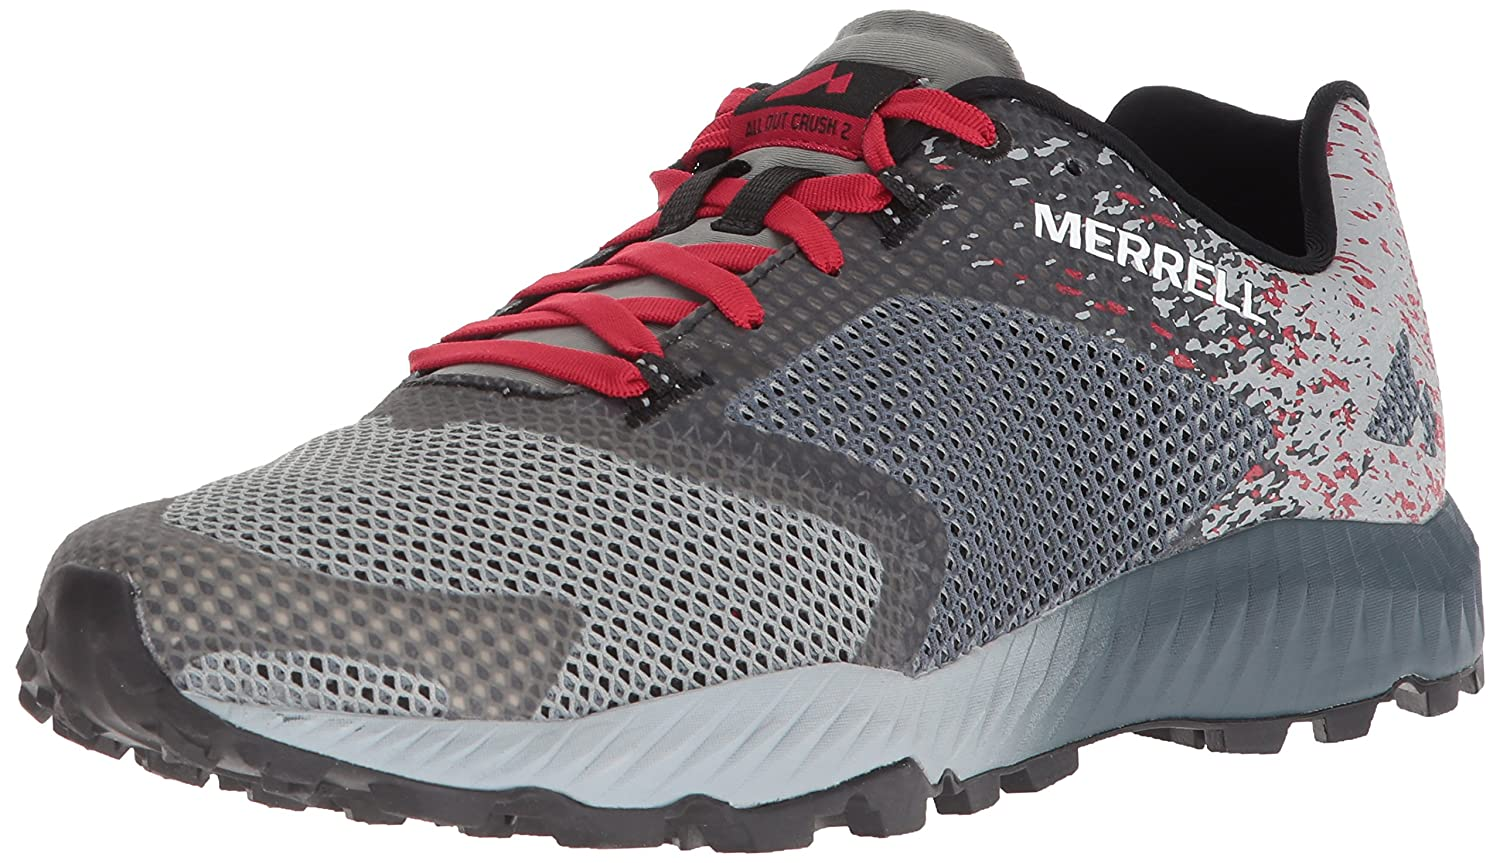 Merrell Men's All Out Crush 2 Sneaker B071JPRXXS 11 D(M) US|Slate